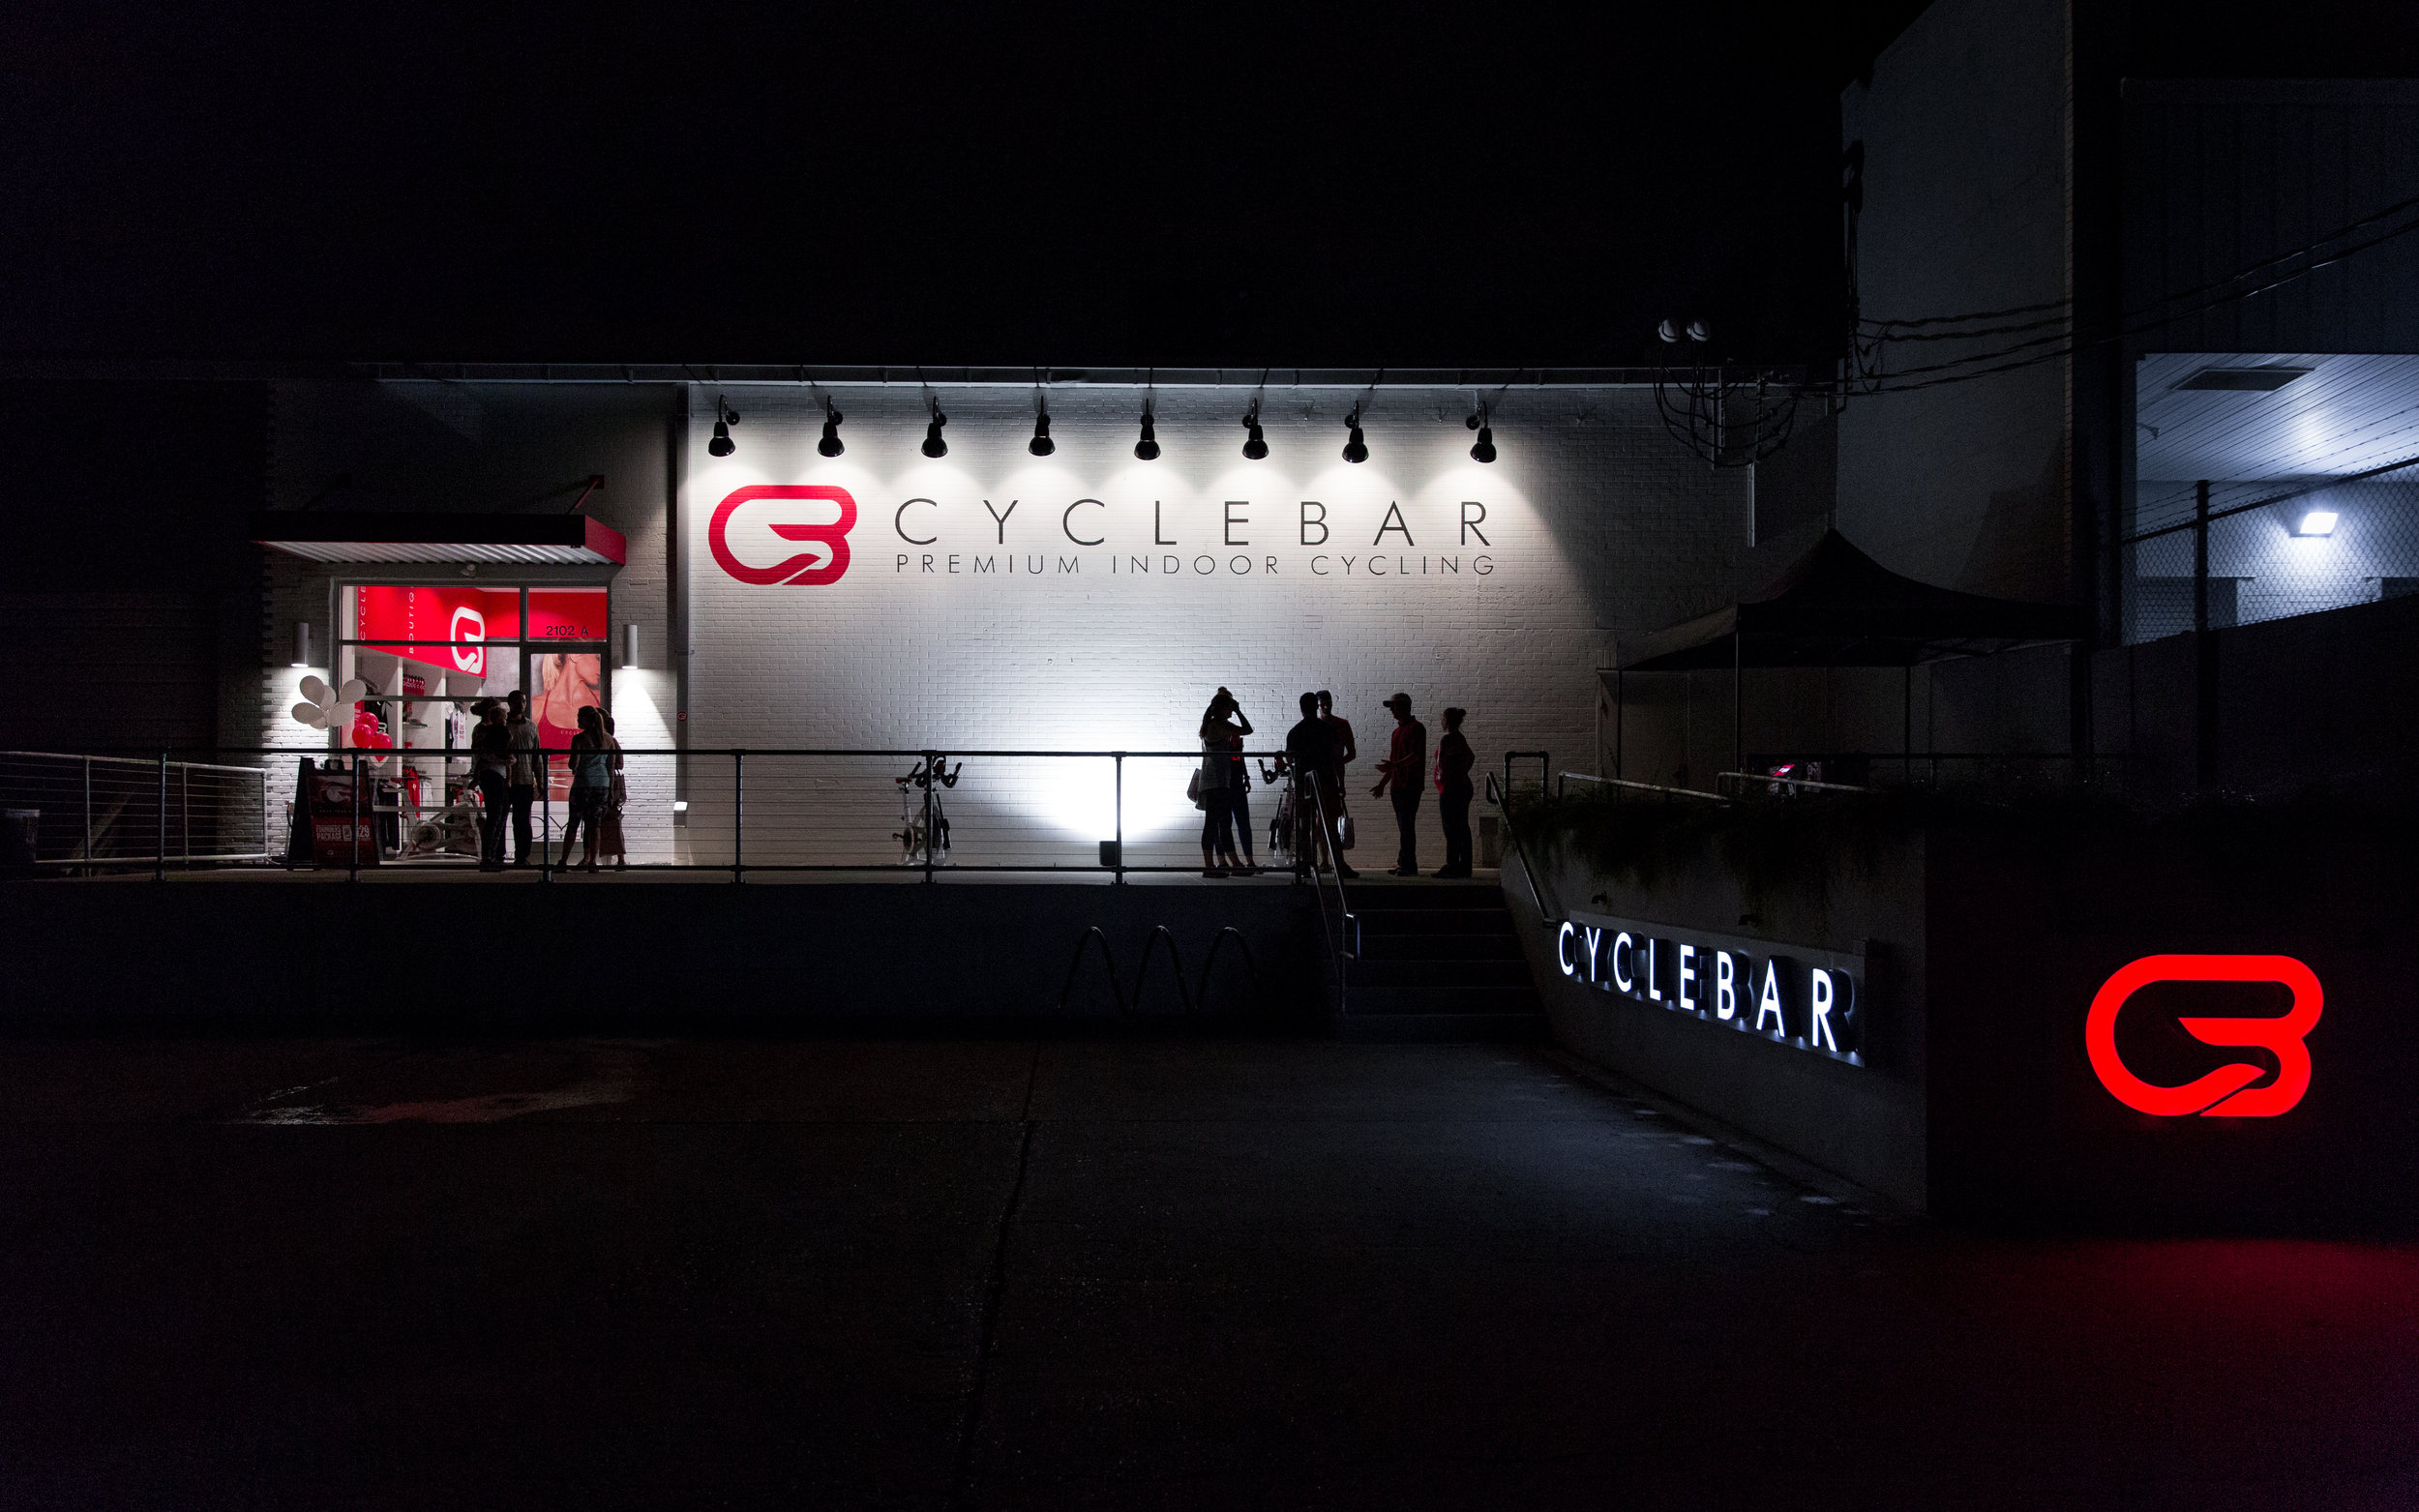 Kirby-Gladstein-CycleBar-Sawyer-Heights-Influencer-Night-2017-2316.jpg